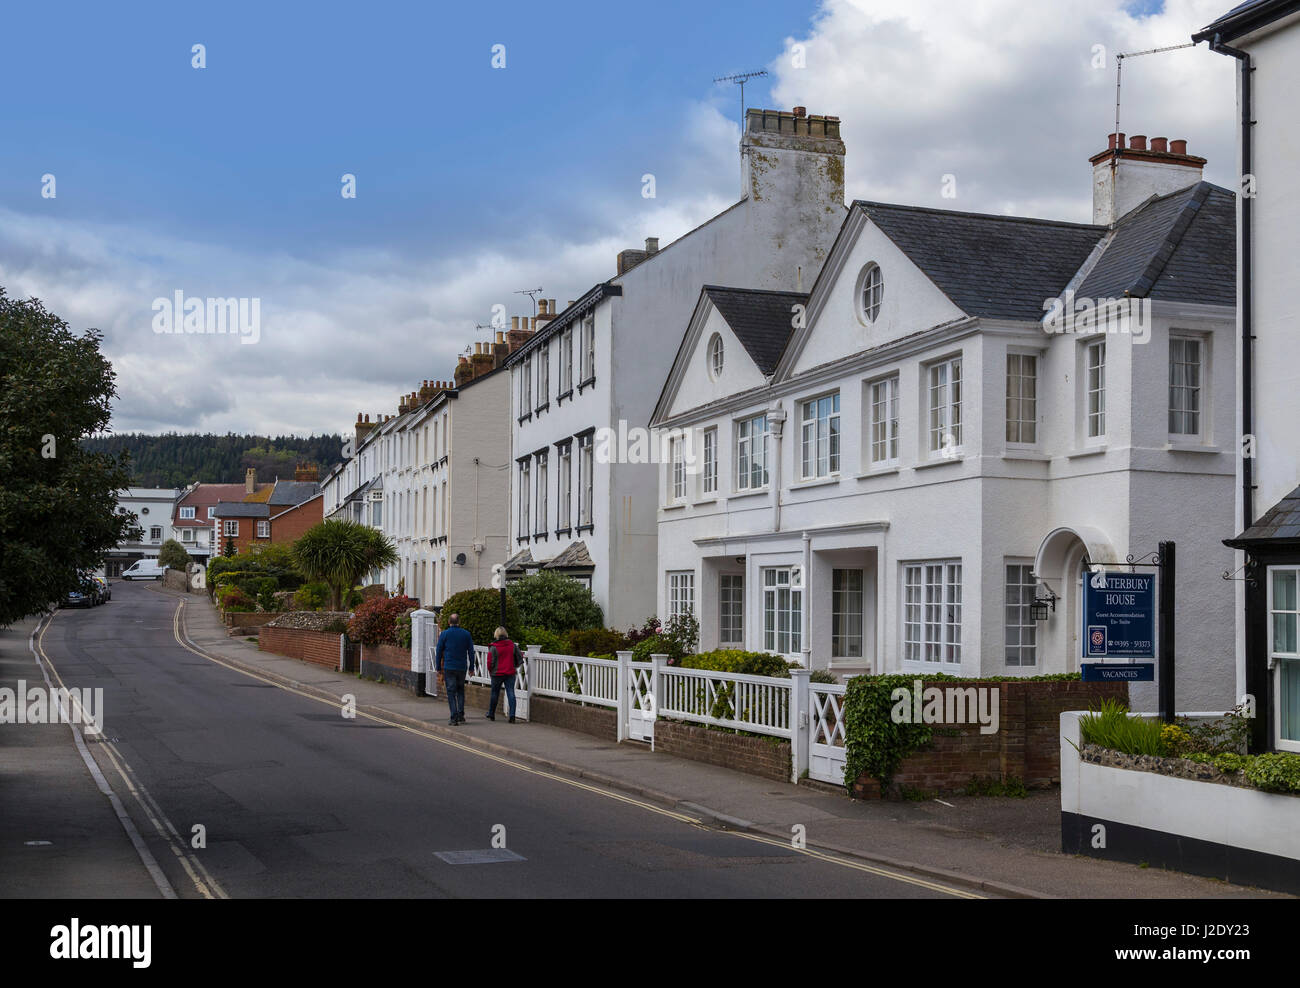 View along Salcombe Road in Sidmouth town centre, including the houses in Cambridge Terrace. - Stock Image